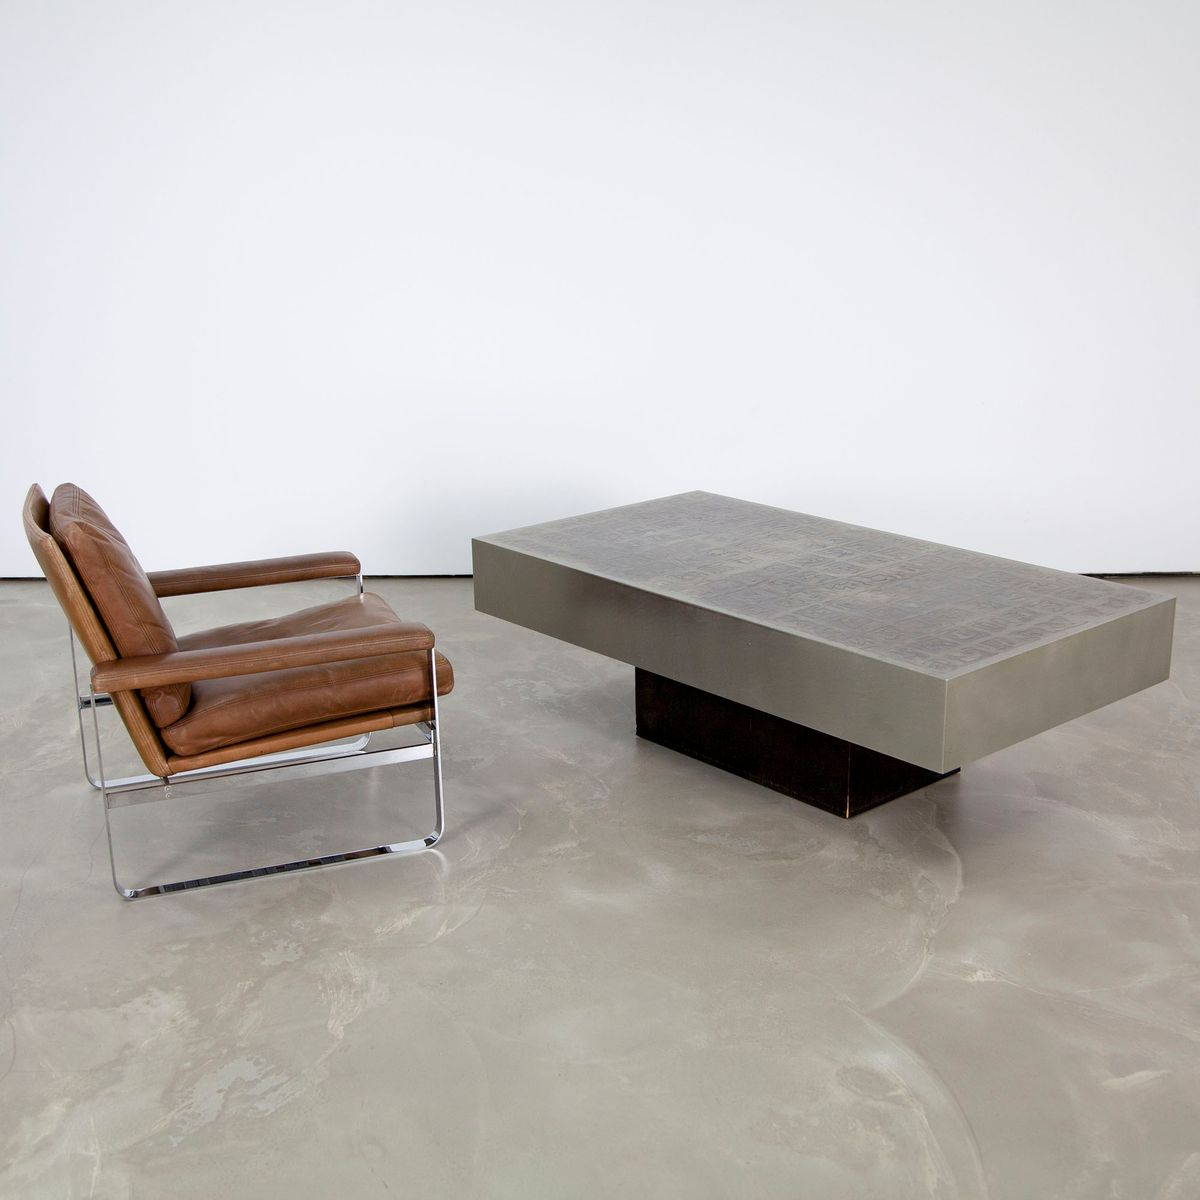 table basse vintage en aluminium par willy rizzo en vente sur pamono. Black Bedroom Furniture Sets. Home Design Ideas